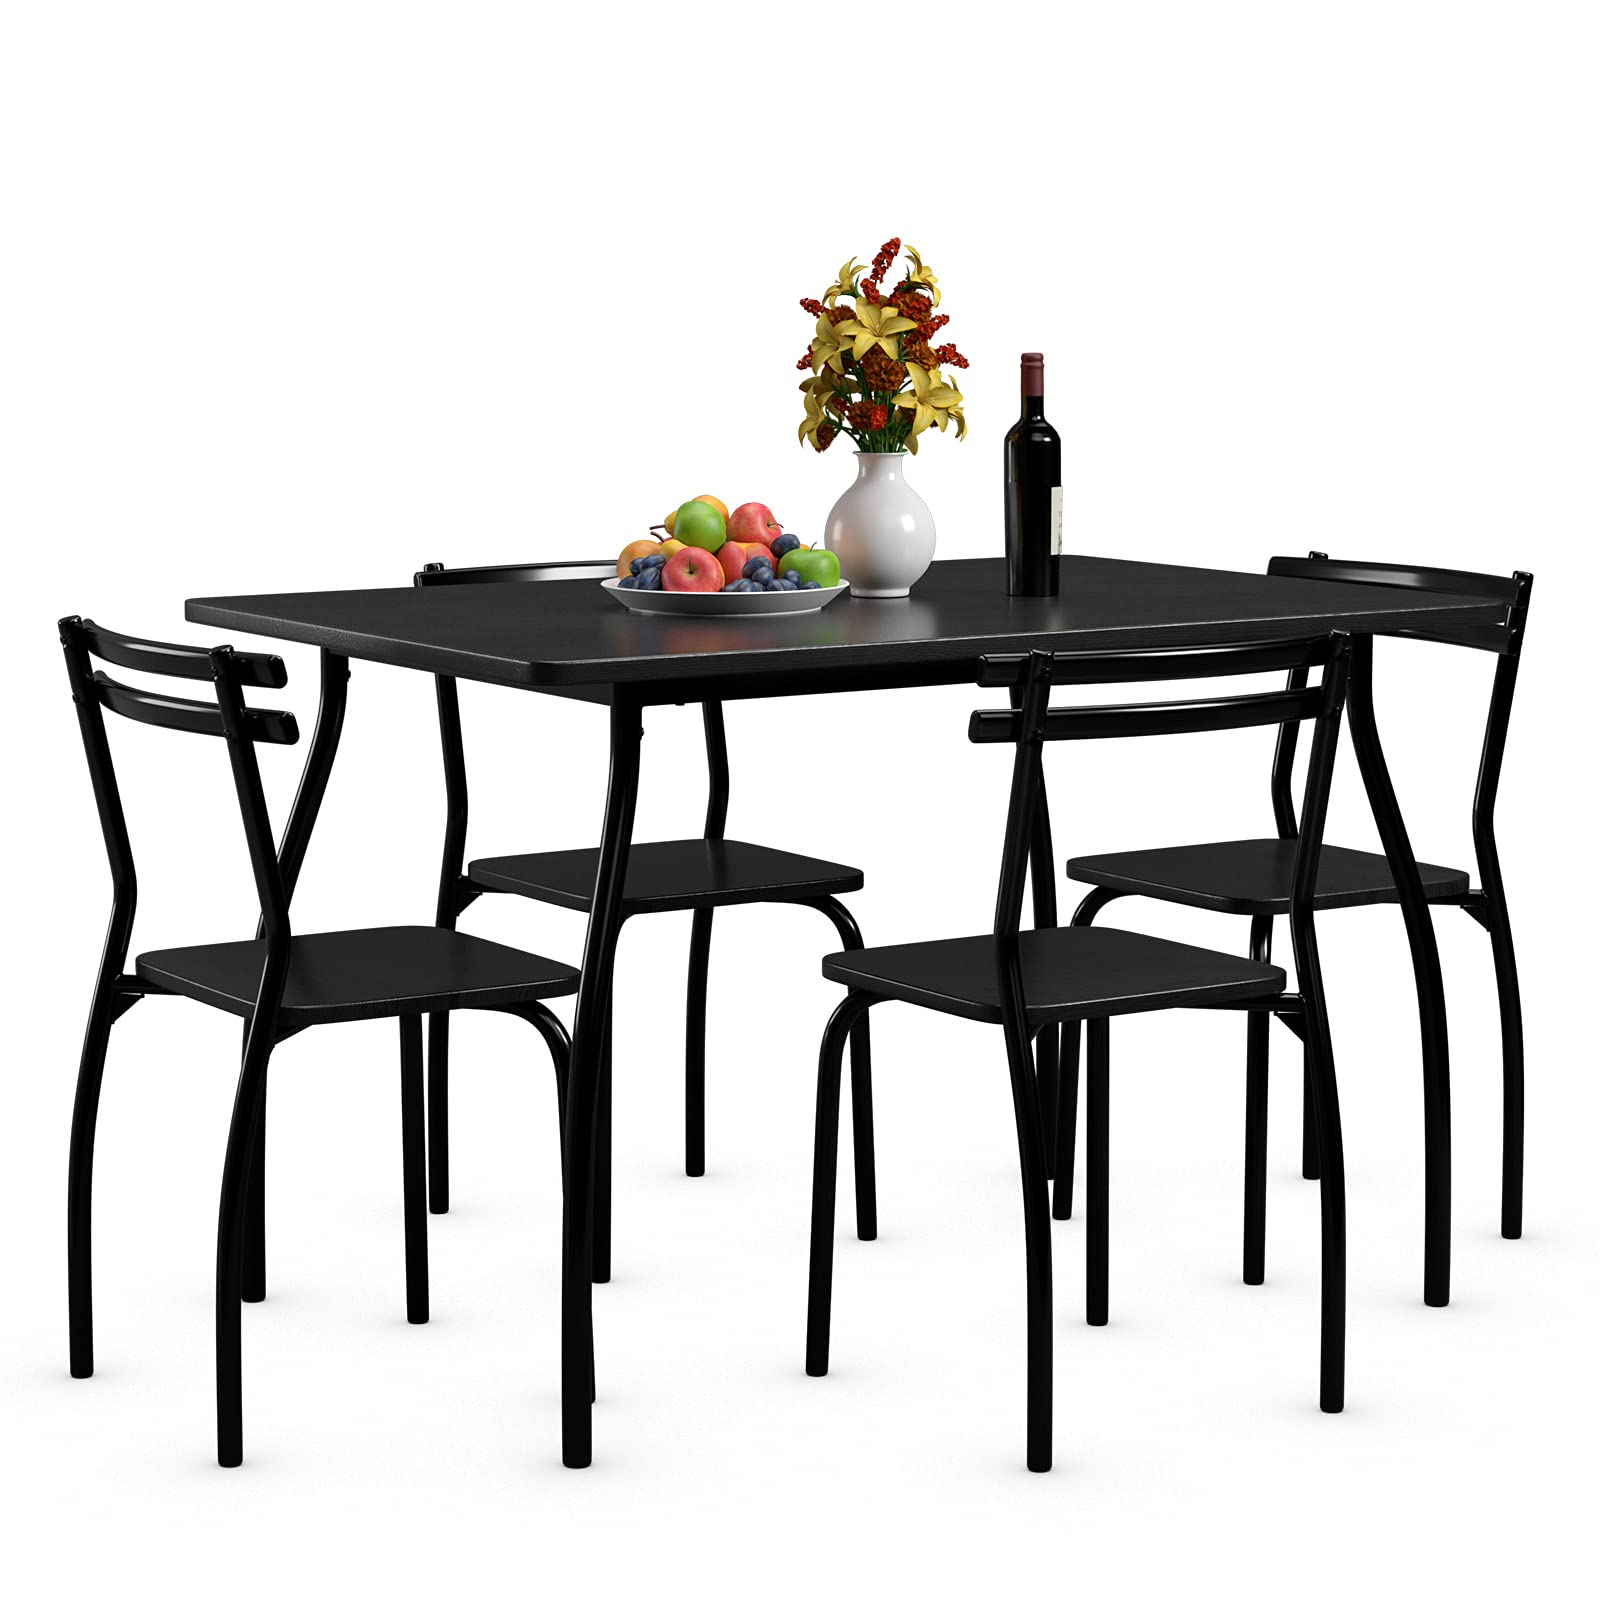 Giantex 9Pcs Dining Table Set for 9, Modern Metal and Wood Indoor  Rectangular Dining Table Furniture Set for Dining Room, Kitchen, Dinette,  Table and ...